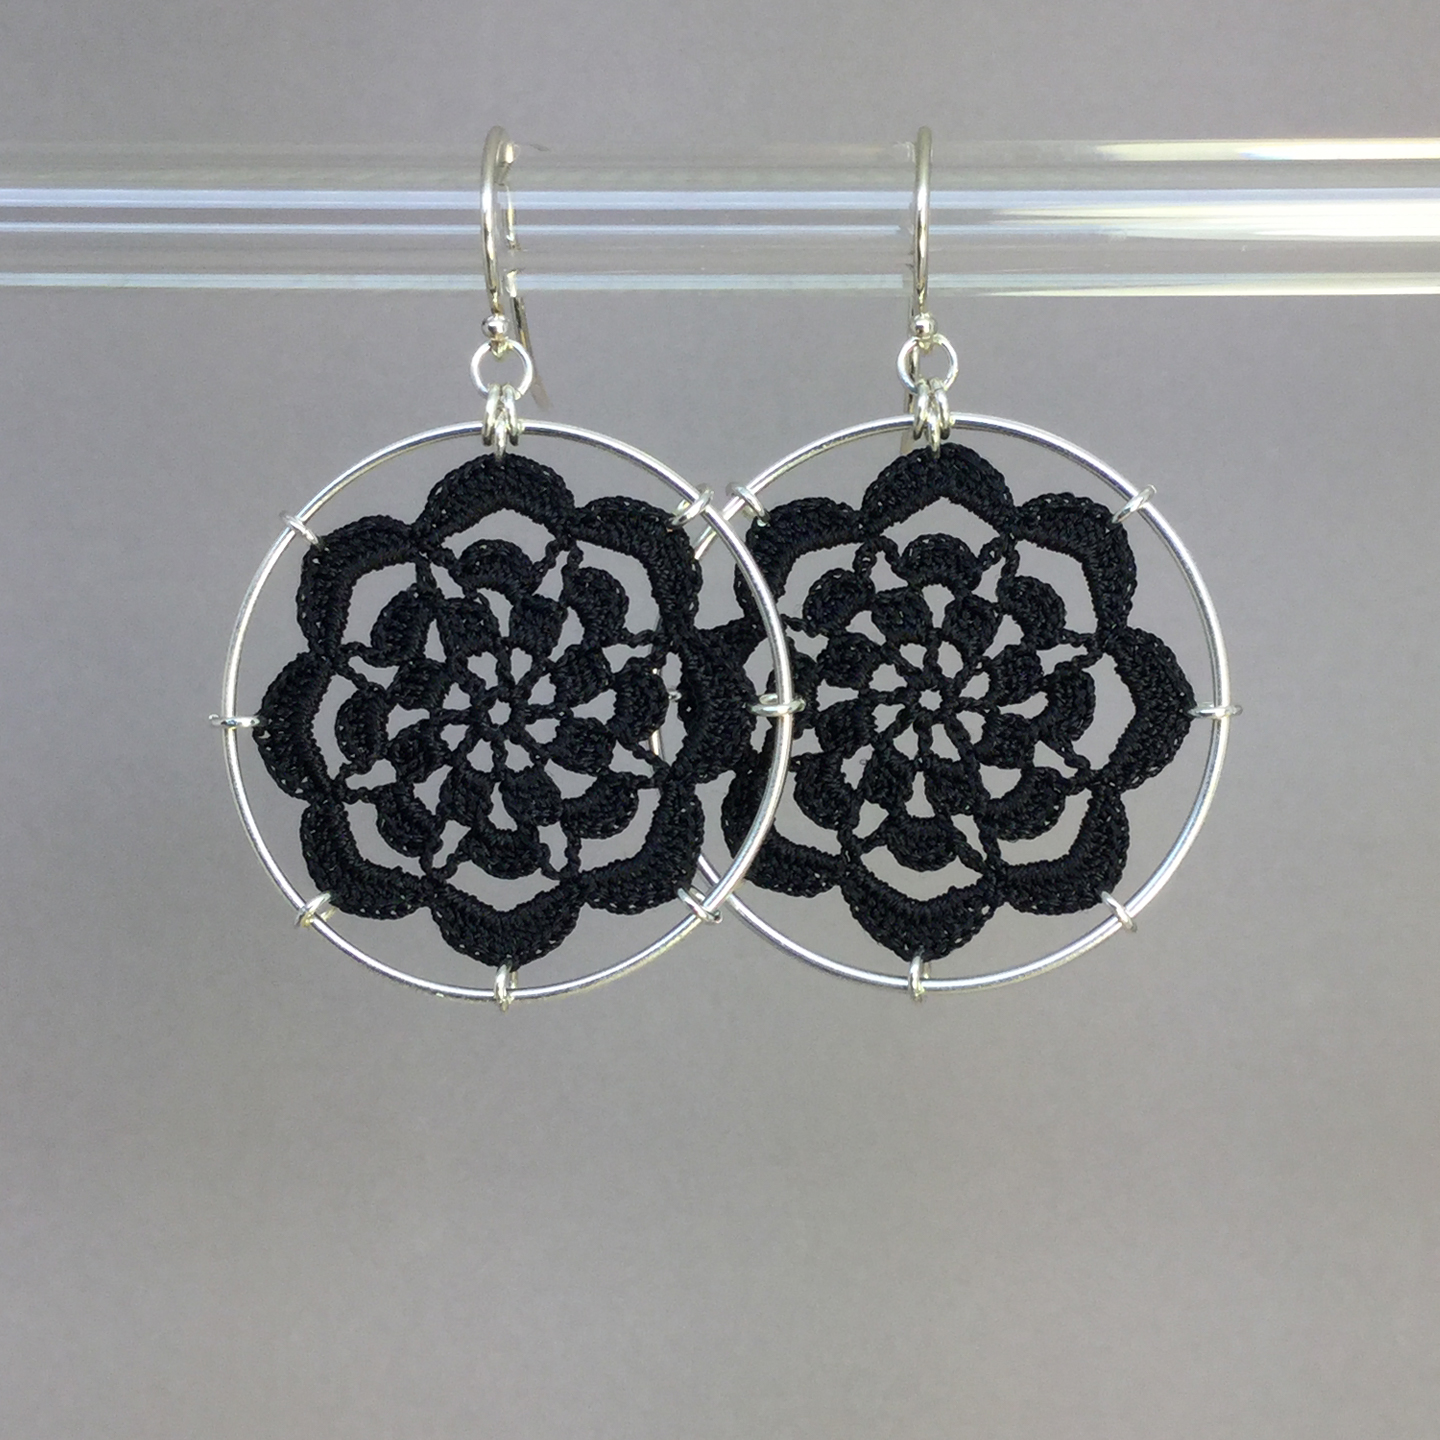 Serendipity earrings, silver, black thread